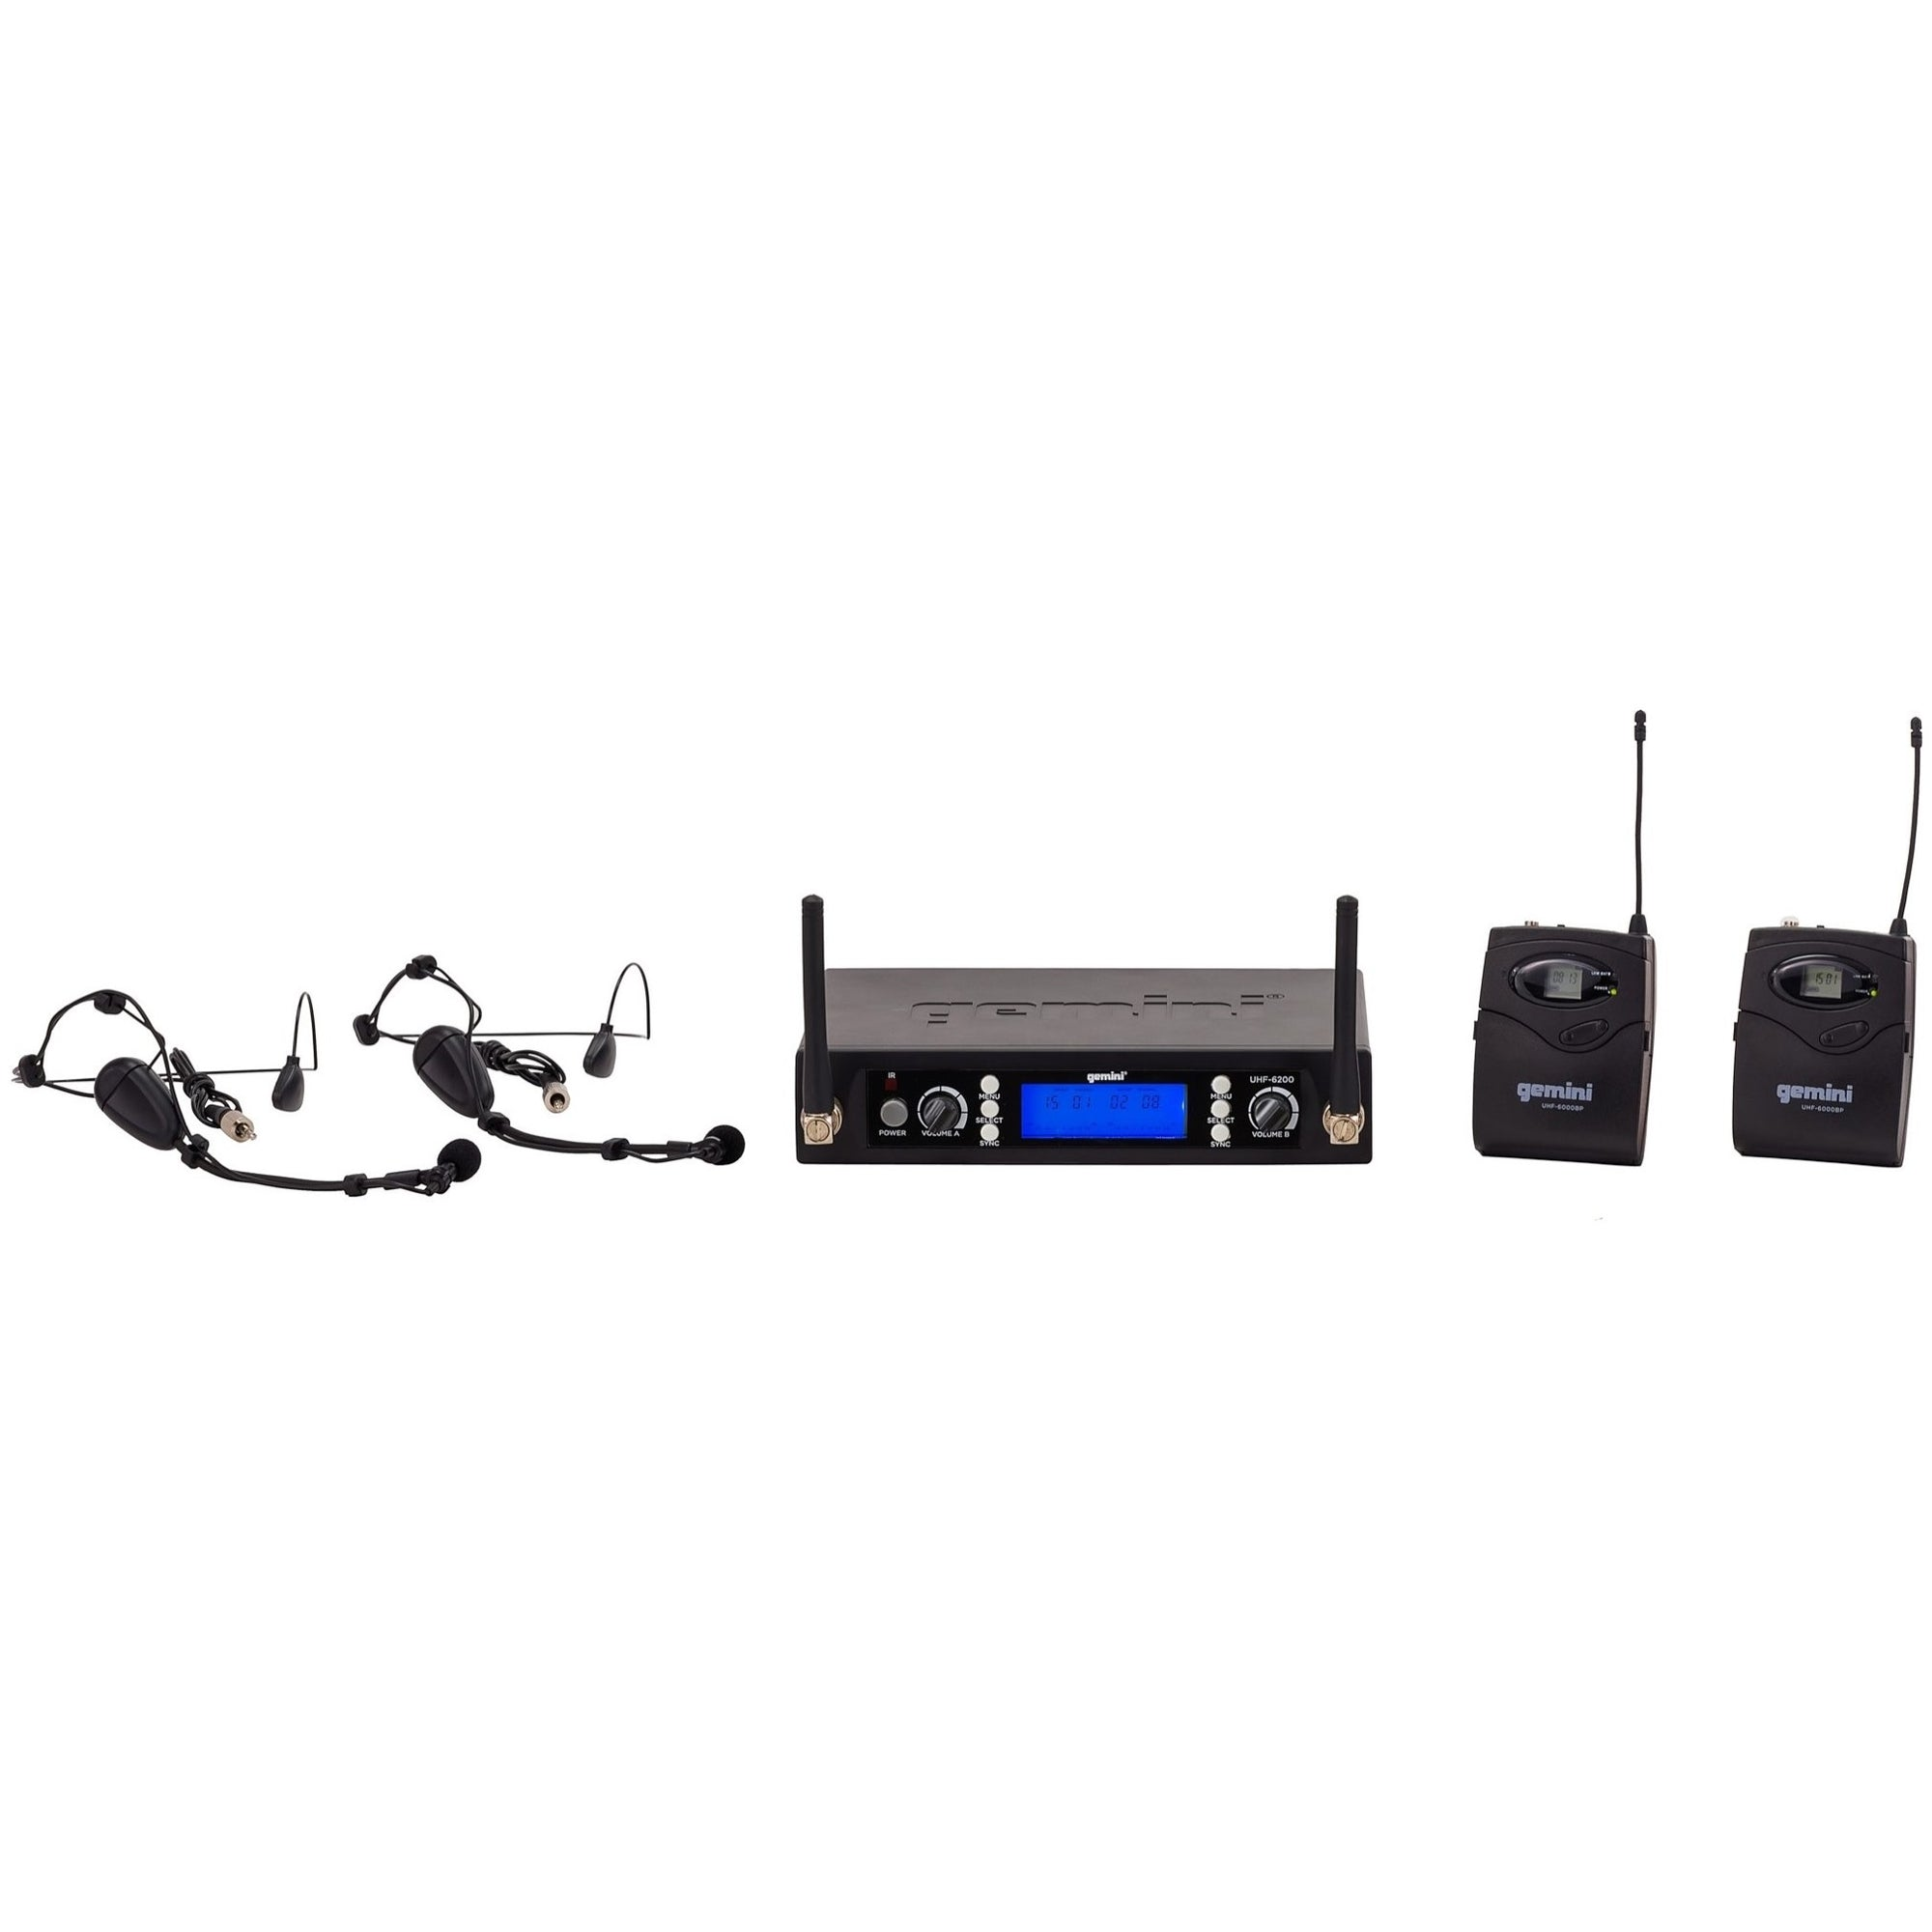 Gemini UHF 6200HL Dual Wireless Headset Microphone System